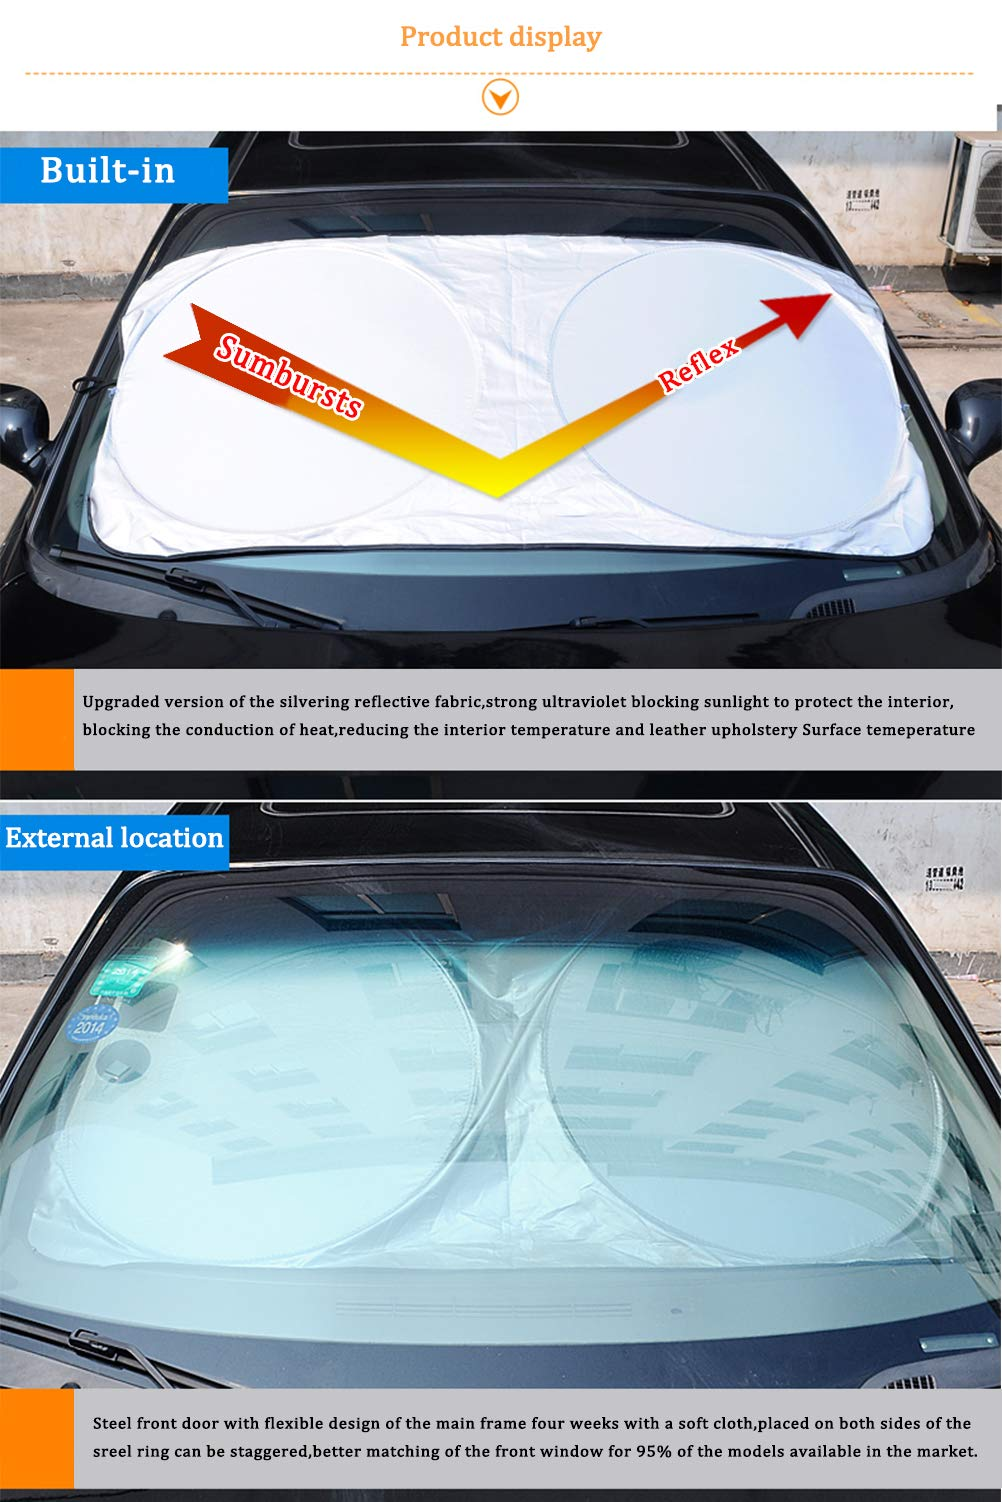 Windshield Sun Shade/Made of 210T Silver Coated Cylon/Effective Insulation/Fits Windshields of Various Sizes (Standard 59 x 31 inches) (6 Sets) by g-oo-d (Image #2)